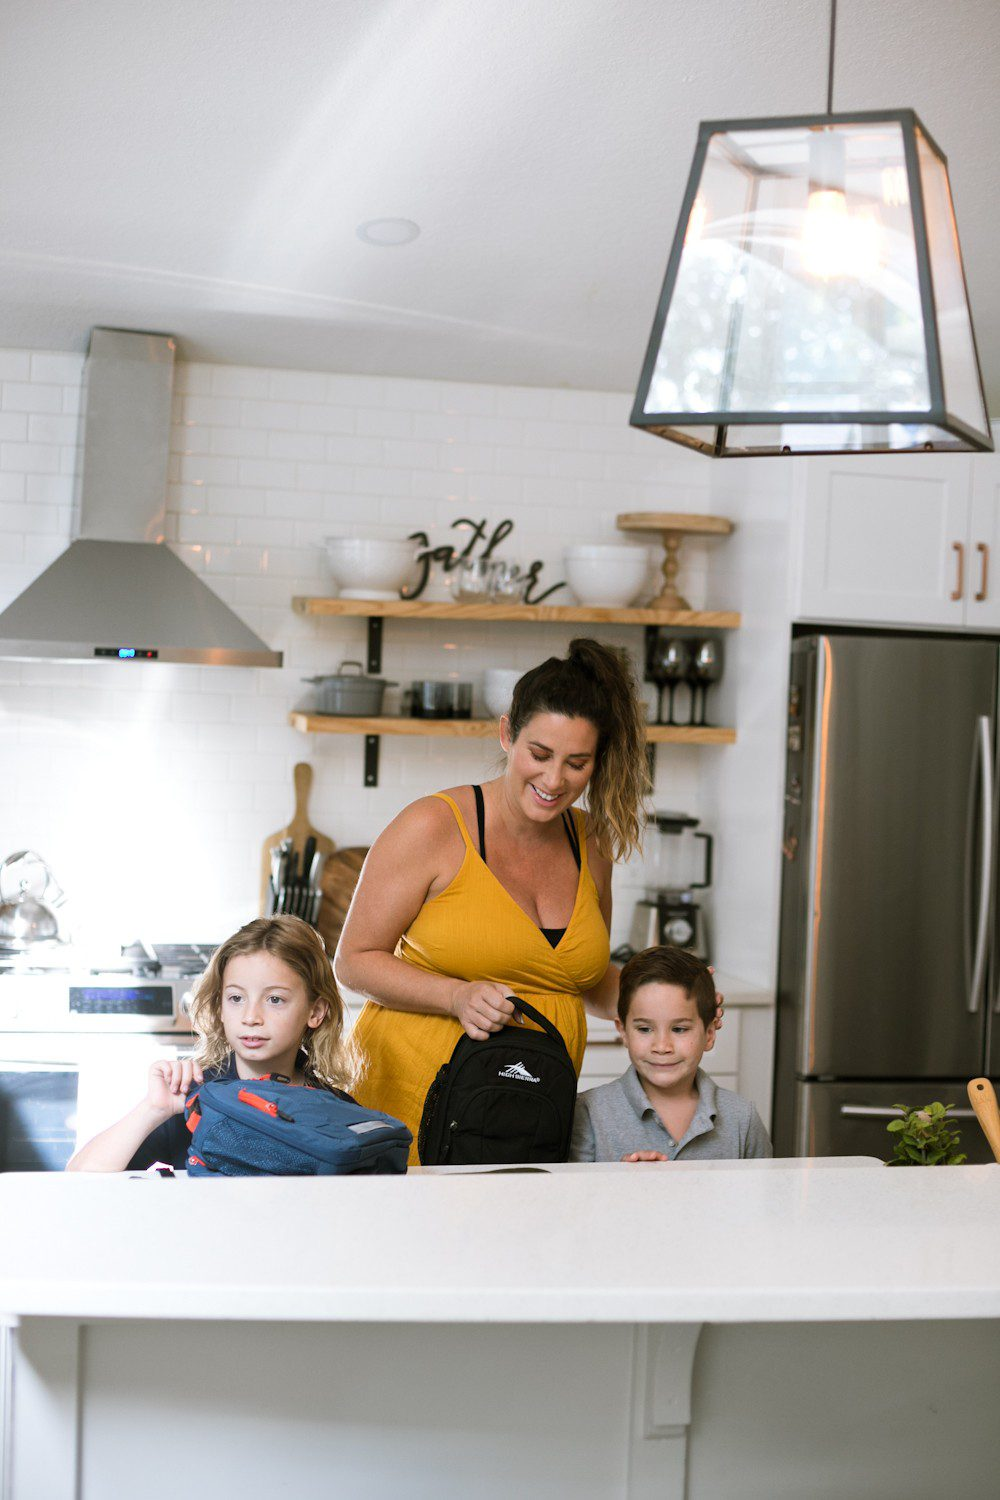 5 Sensational Strategies to Make Getting Ready for School Easy | How to Get Ready for School: 5 Sensational Strategies to Make Easy on your Family by popular Tampa life and style blog, Fresh Mommy: image of a woman standing her kitchen and helping her kids pack their lunch boxes.